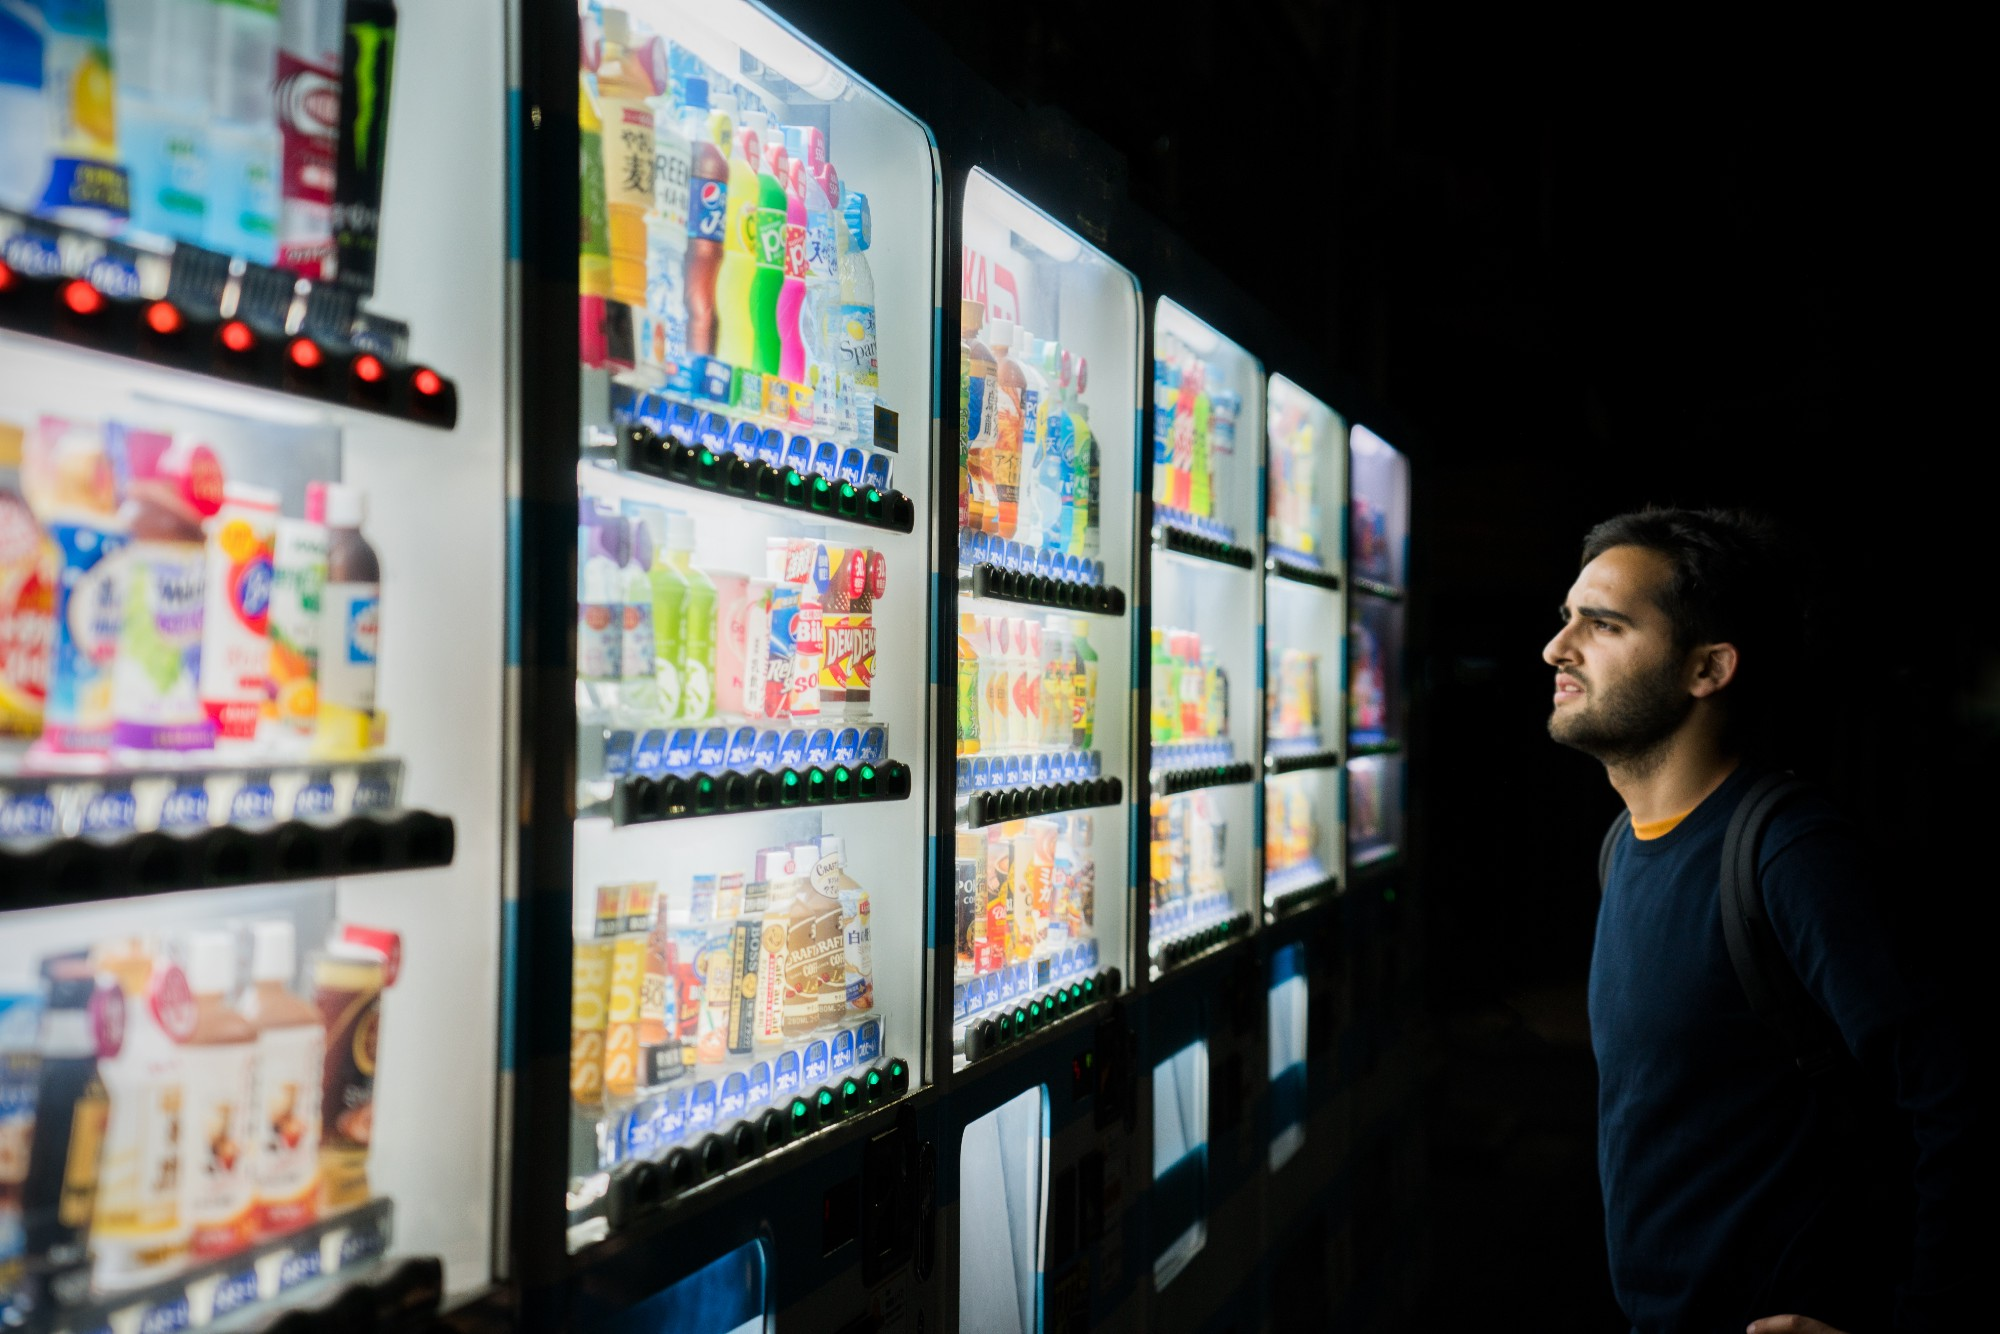 Man choosing drinks from the vendo machines